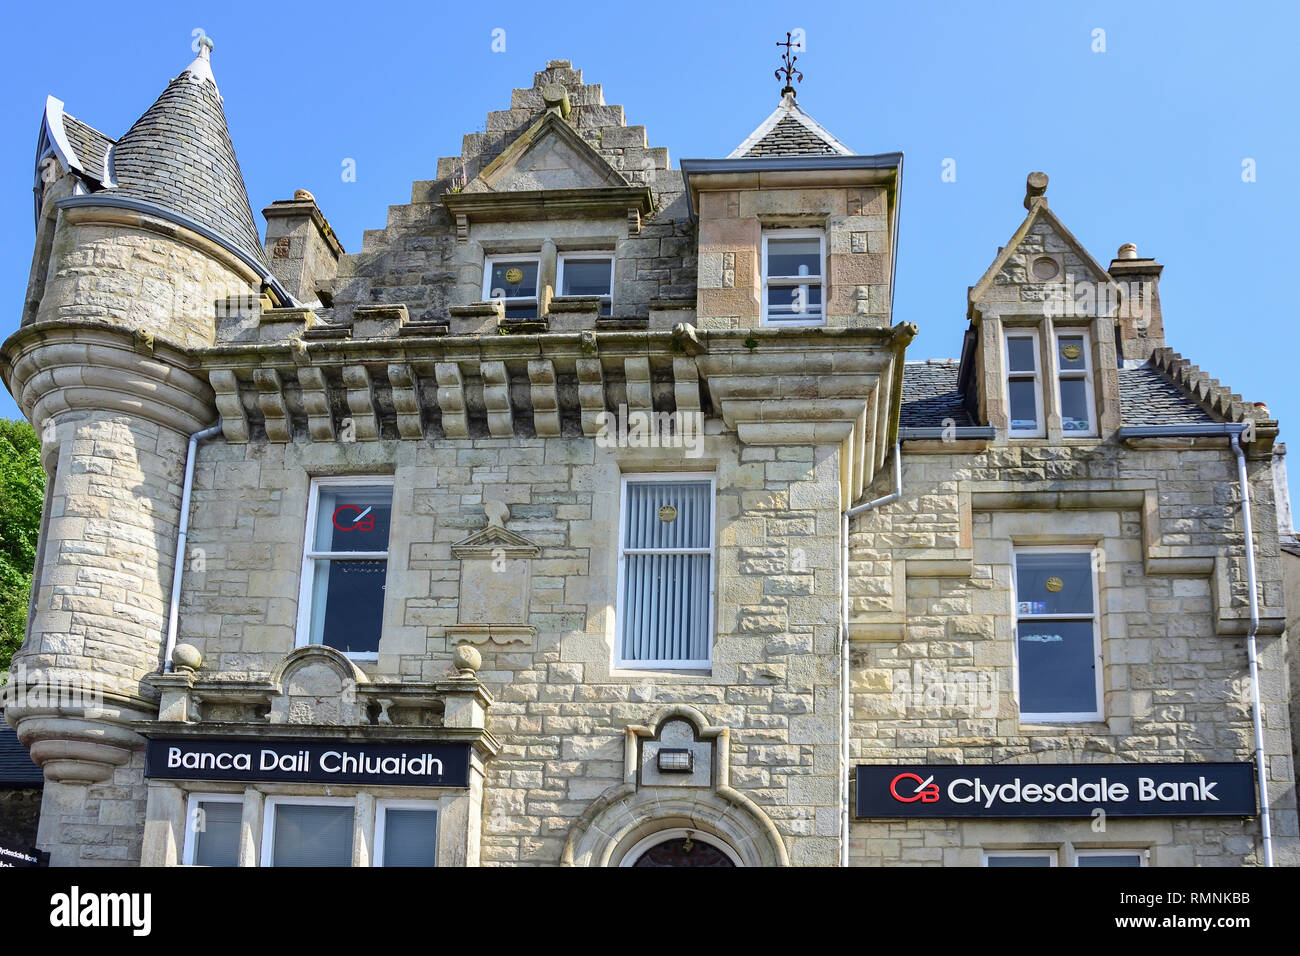 Clydesdale bank, Main Street, Tobermory, Isle of Bute, Inner Hebrides, Argyll and Bute, Scotland, United Kingdom - Stock Image